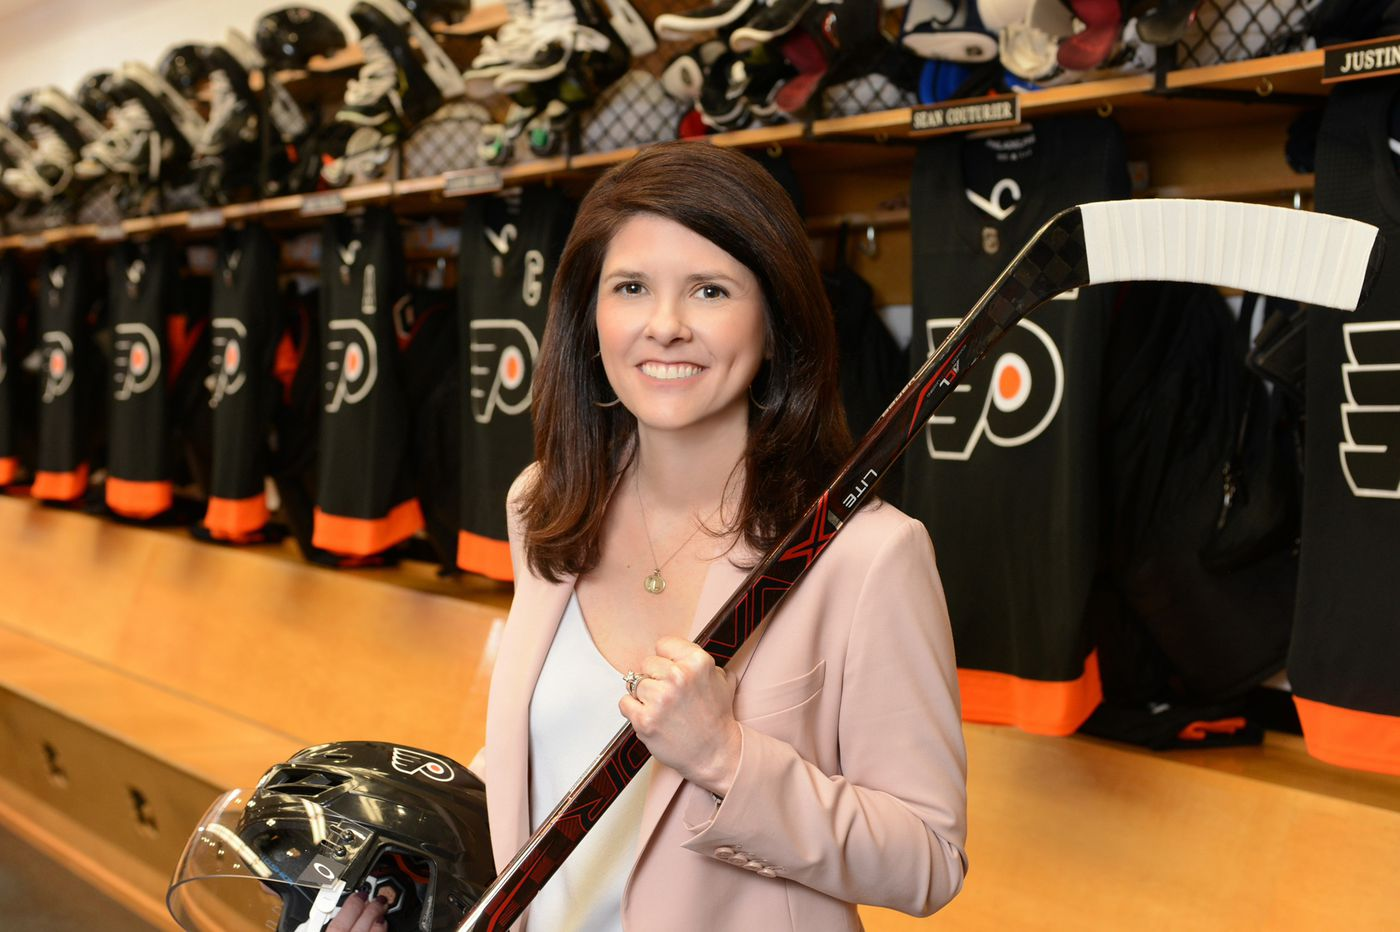 The NHL wants more women in leadership. The Flyers' Valerie Camillo is ahead of that game.